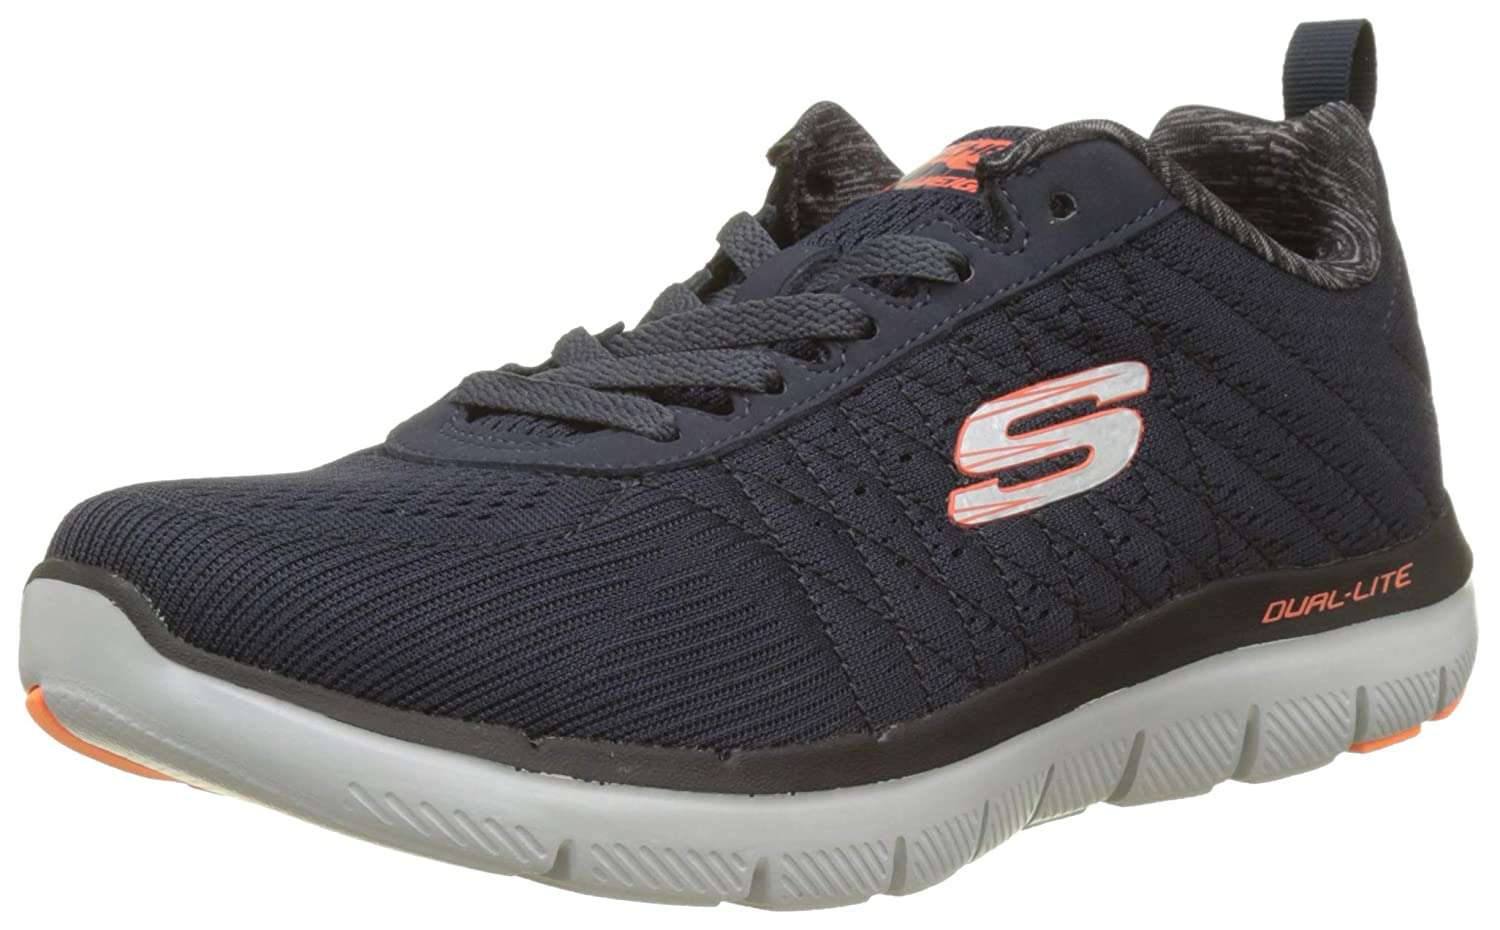 Bleu (Dark Navy) 41.5 EU Skechers Flex Advantage 2.0-The Happs, Chaussures de FonctionneHommest Homme